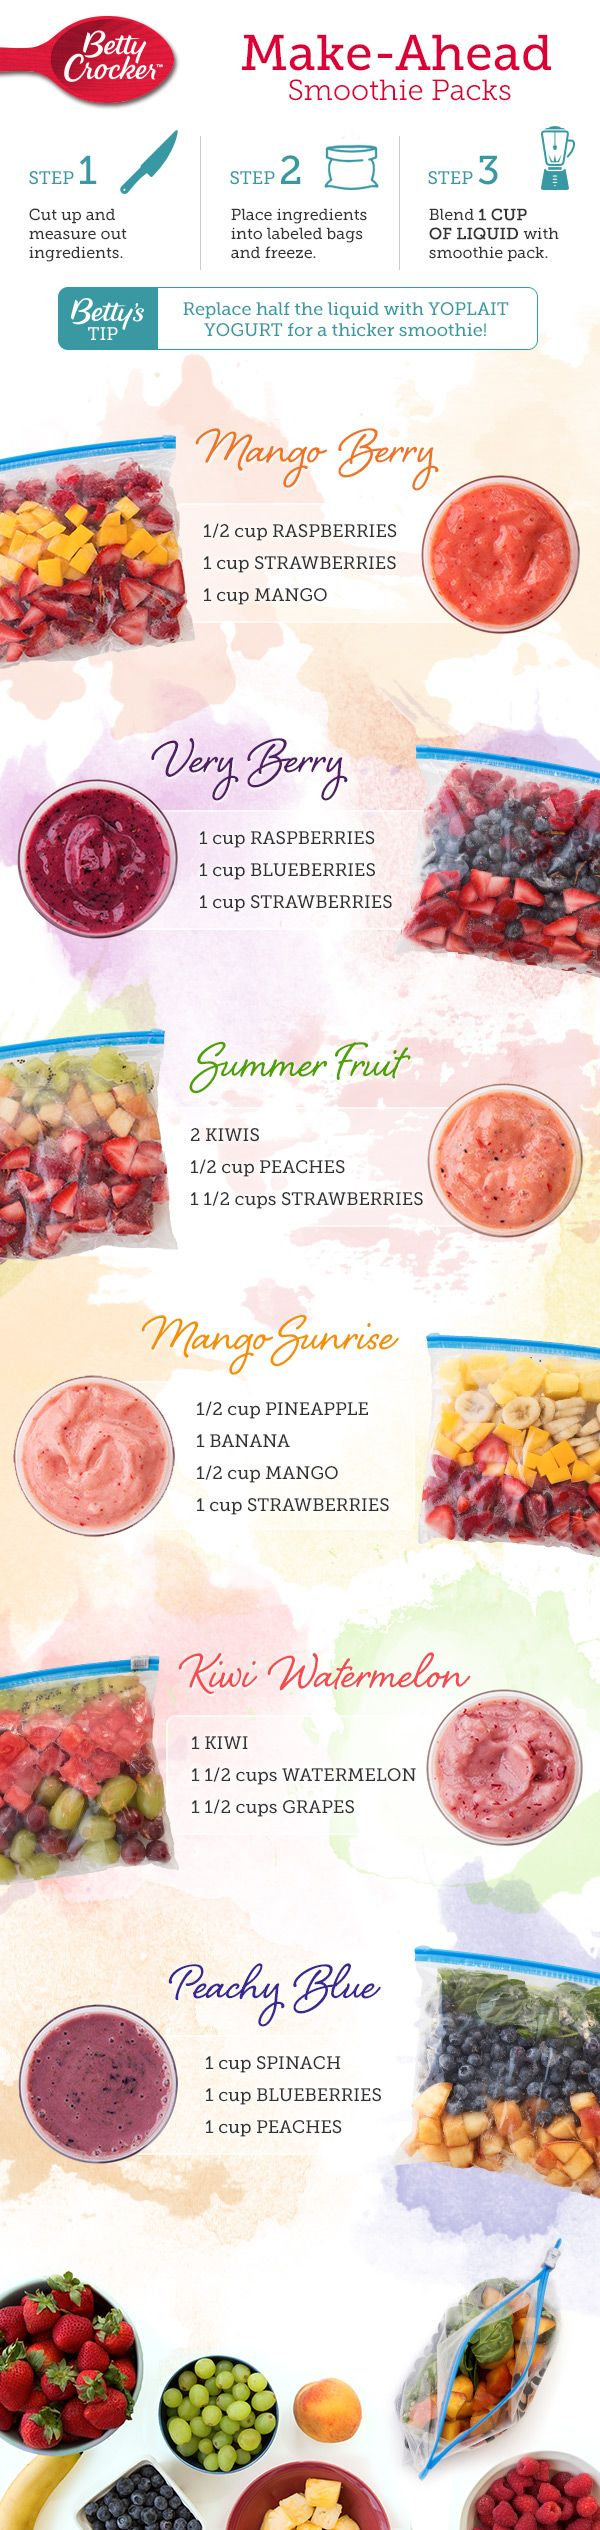 Don't have time to make #smoothies in the morning? Well then this is perfect for you! These make-ahead smoothie packs will completely change your mornings for the better. Just pre-pack the ingredients and keep them in the freezer until you are ready to po